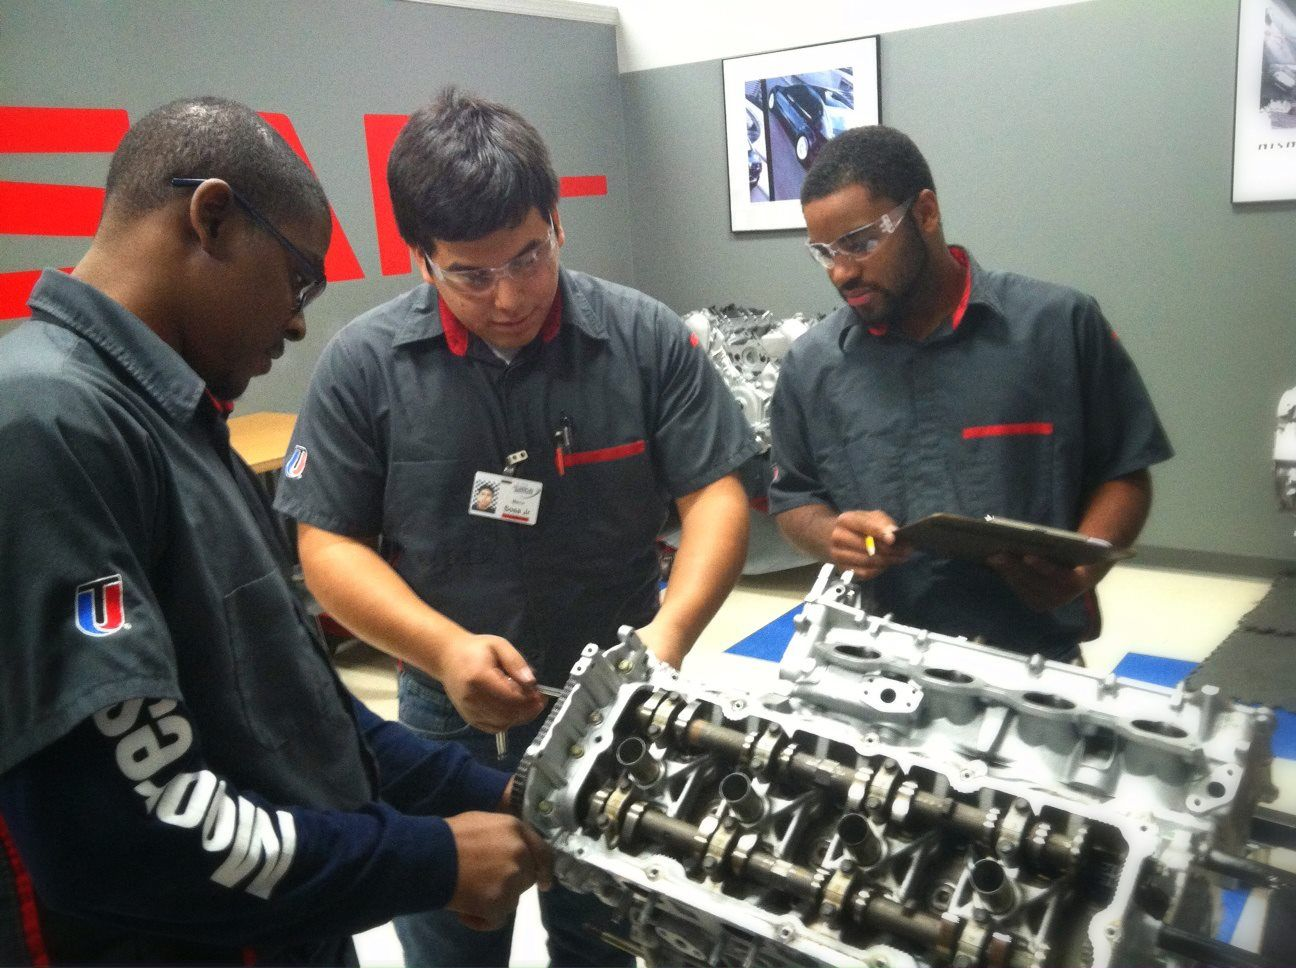 These Students Are Working On A Nissan Vk Series Engine While